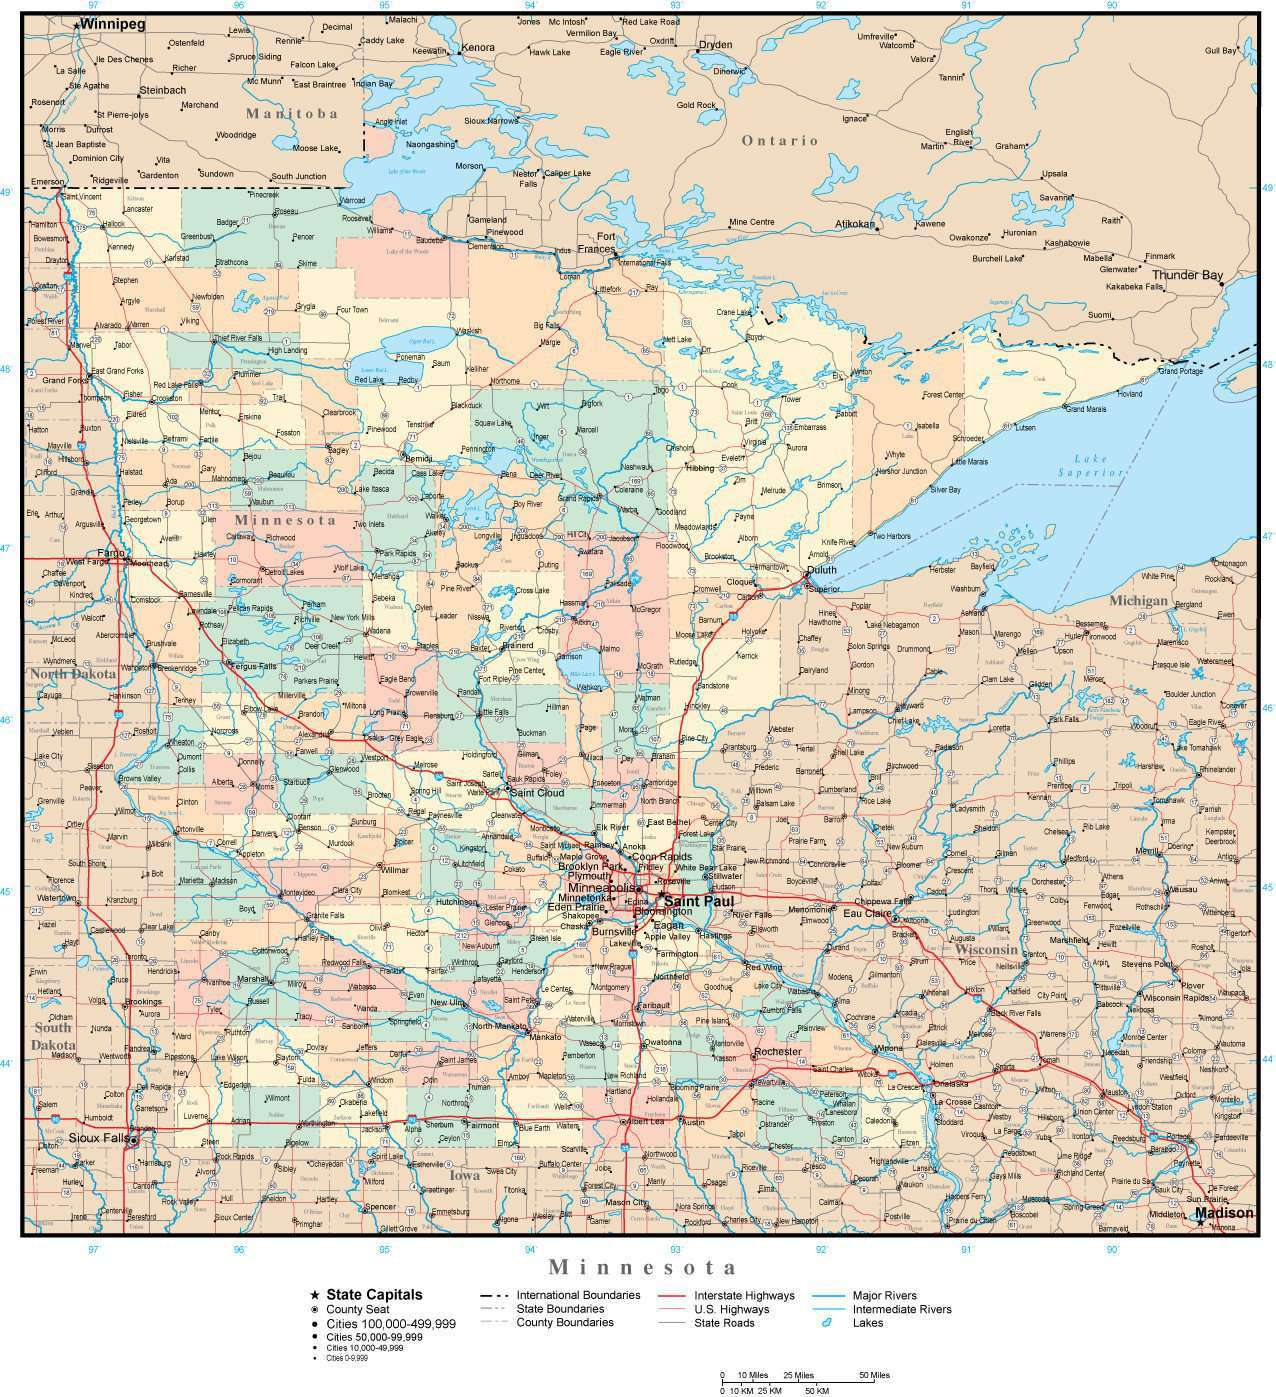 Minnesota Adobe Illustrator Map With Counties Cities County Seats